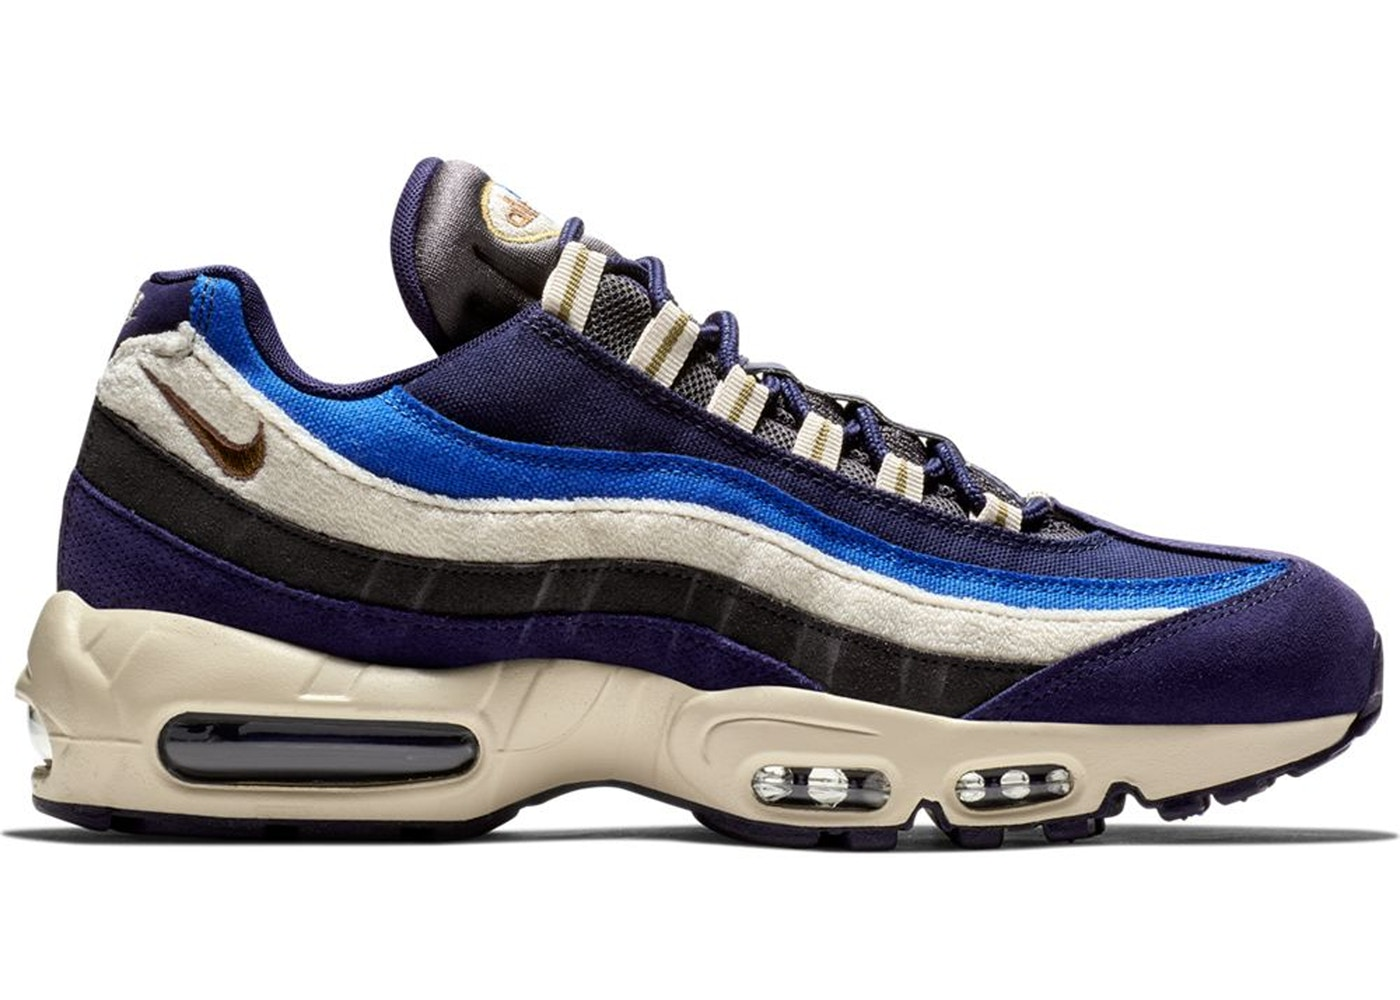 official photos 19cf0 e51d4 Buy Nike Air Max 95 Shoes  Deadstock Sneakers